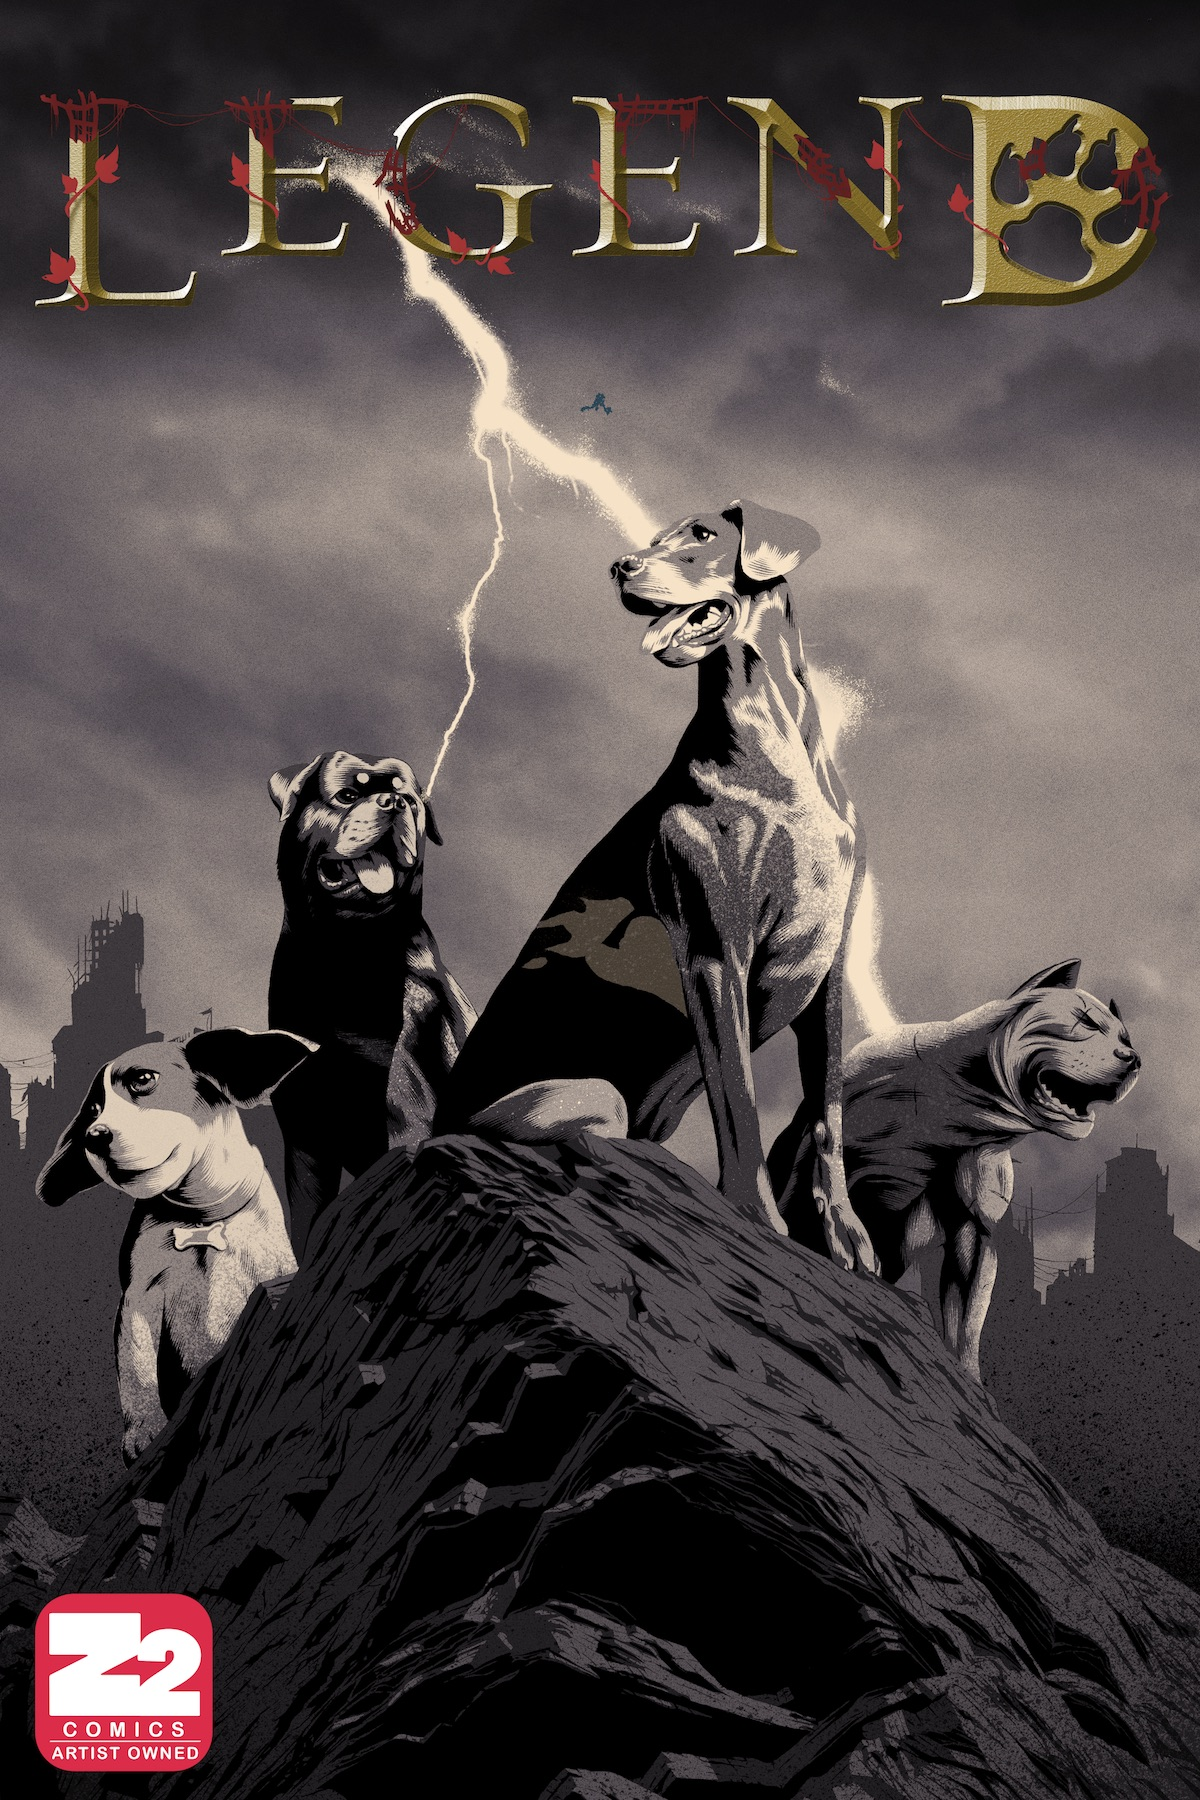 LEGEND by Samuel Sattin and Chris Koehler   What if a biological terror agent wiped out most of humanity, and our domesticated animals were left in charge? How would our dogs and cats set about ruling and rebuilding the world? Ransom, the leader of the Dog Tribe, has been murdered by a creature known as the Endark. An English Pointer named Legend reluctantly rises to lead in his place, vowing to kill the monster once and for all. From acclaimed novelist Samuel Sattin and award-winning illustrator Chris Koehler comes Legend, where cat technology rules, dogs partner with hawks, and humans may be the most beastly creatures of all.